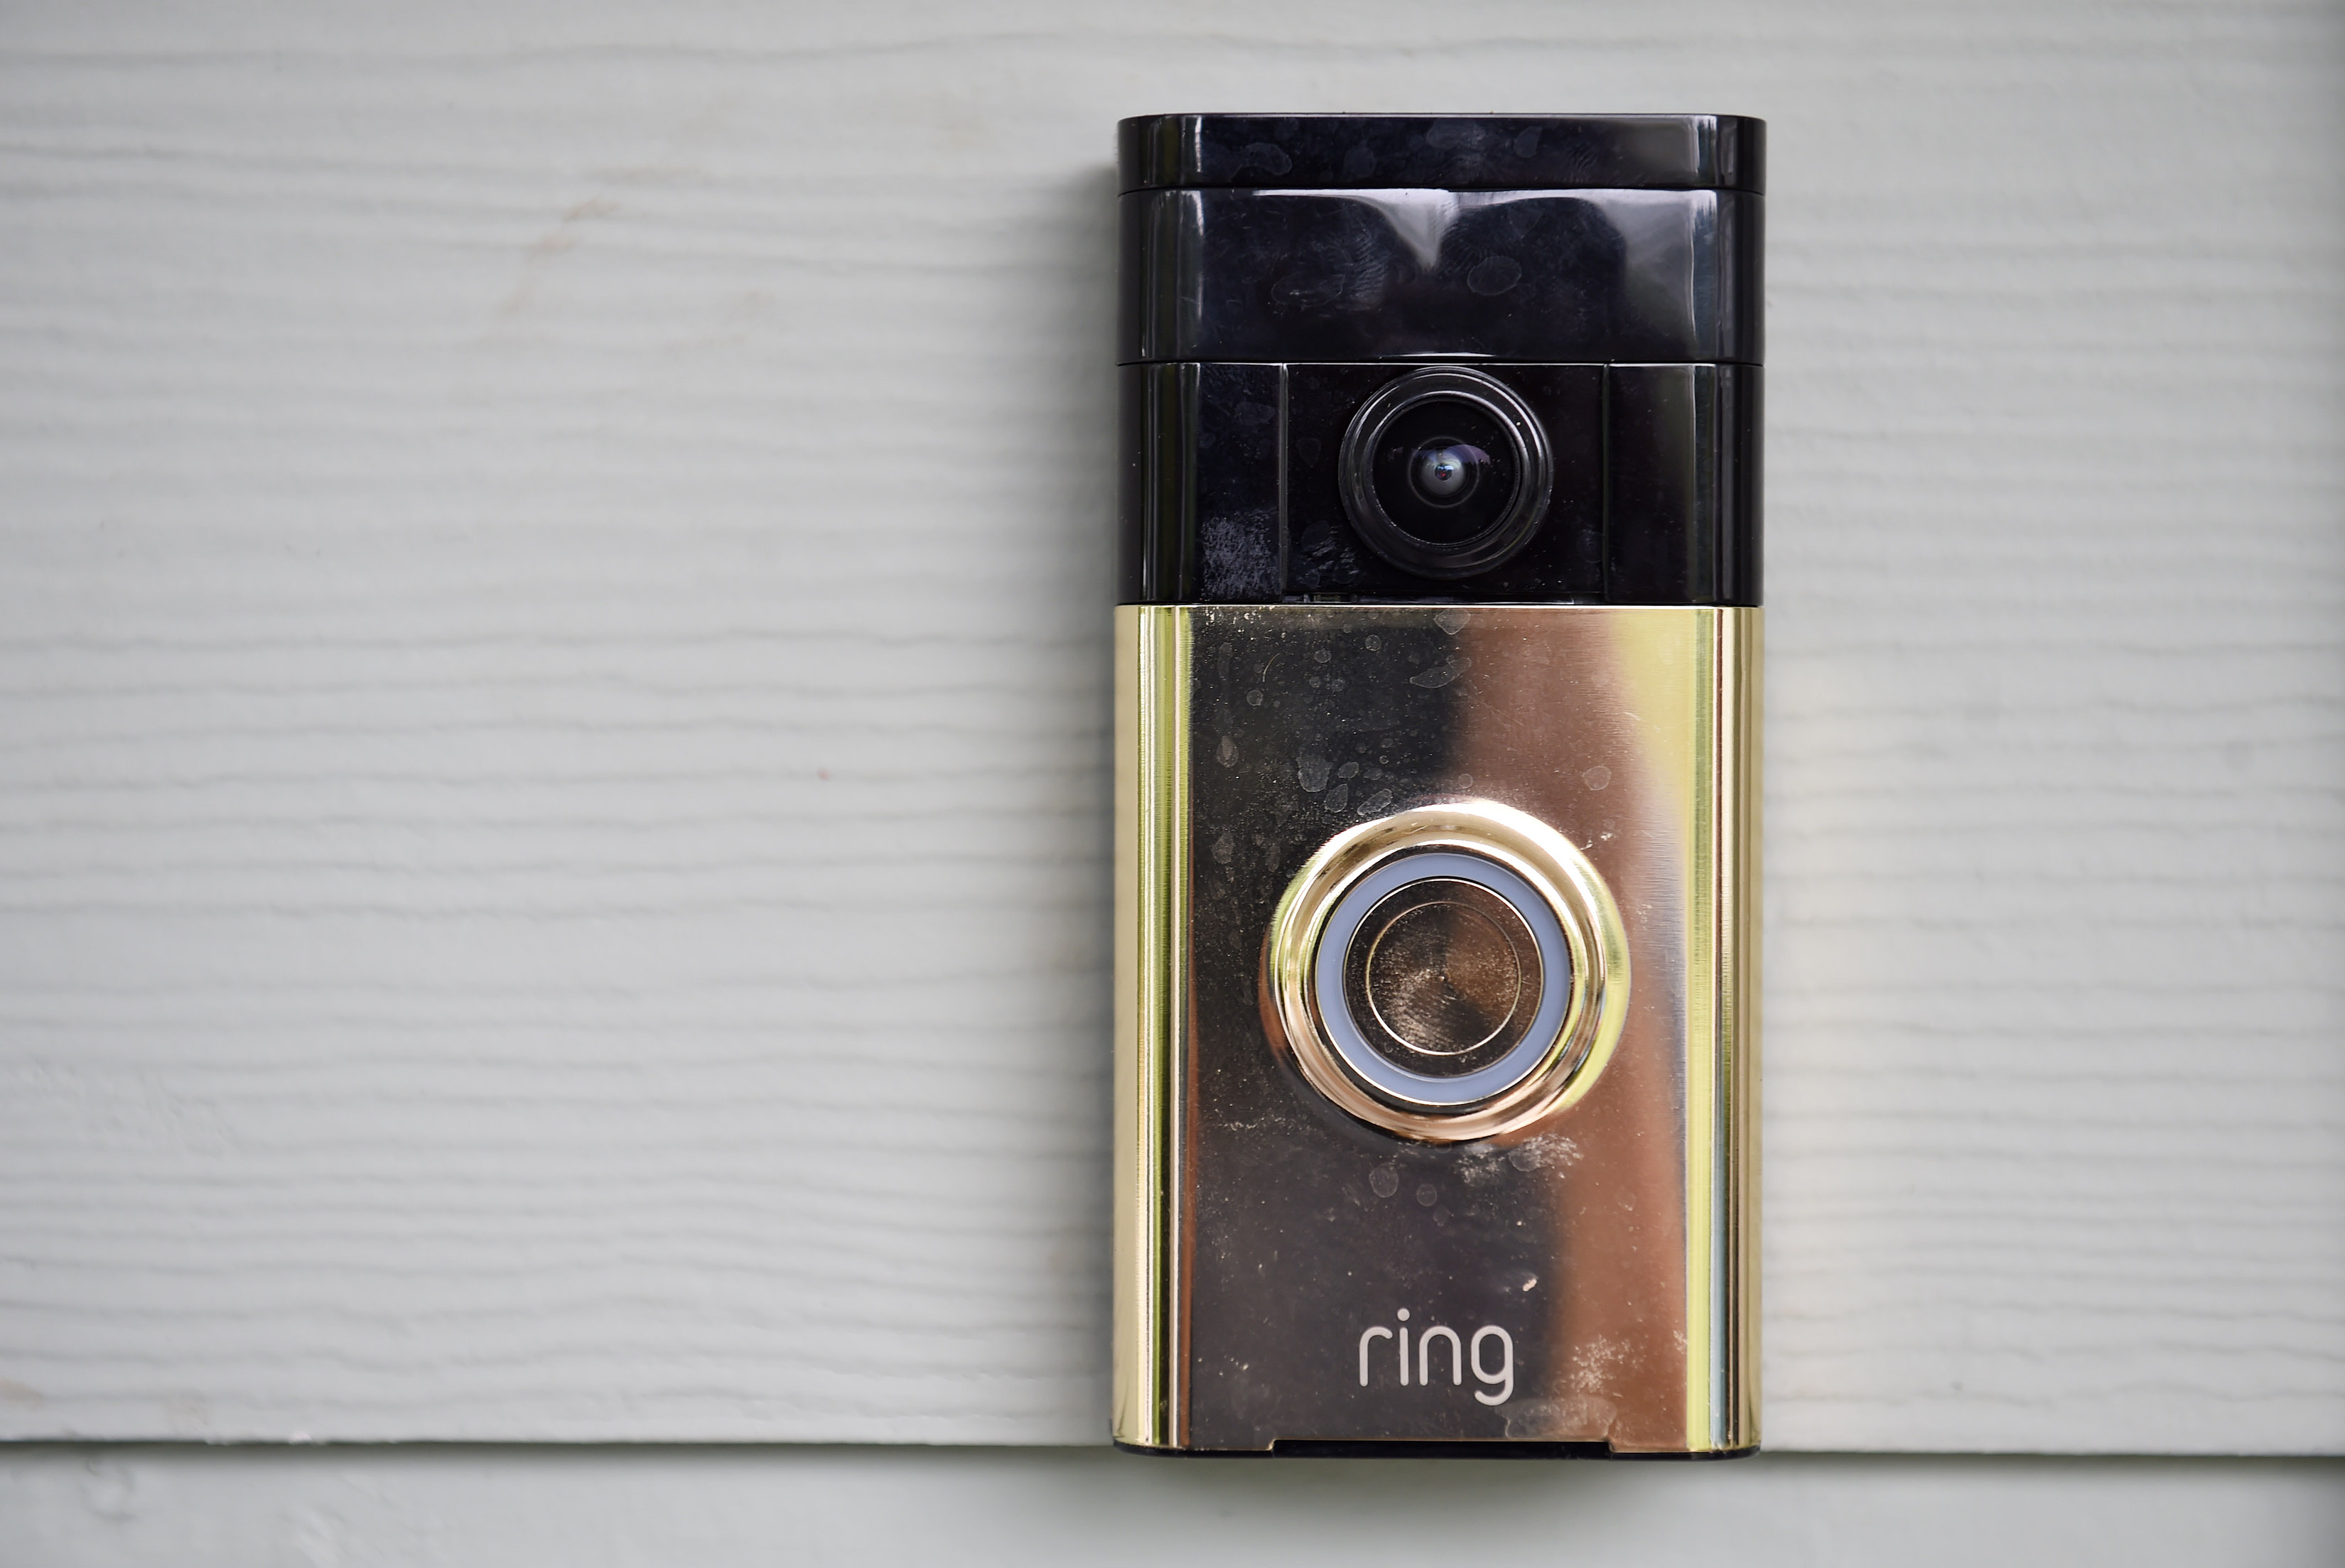 Ring's end-to-end encryption is coming out all over the world